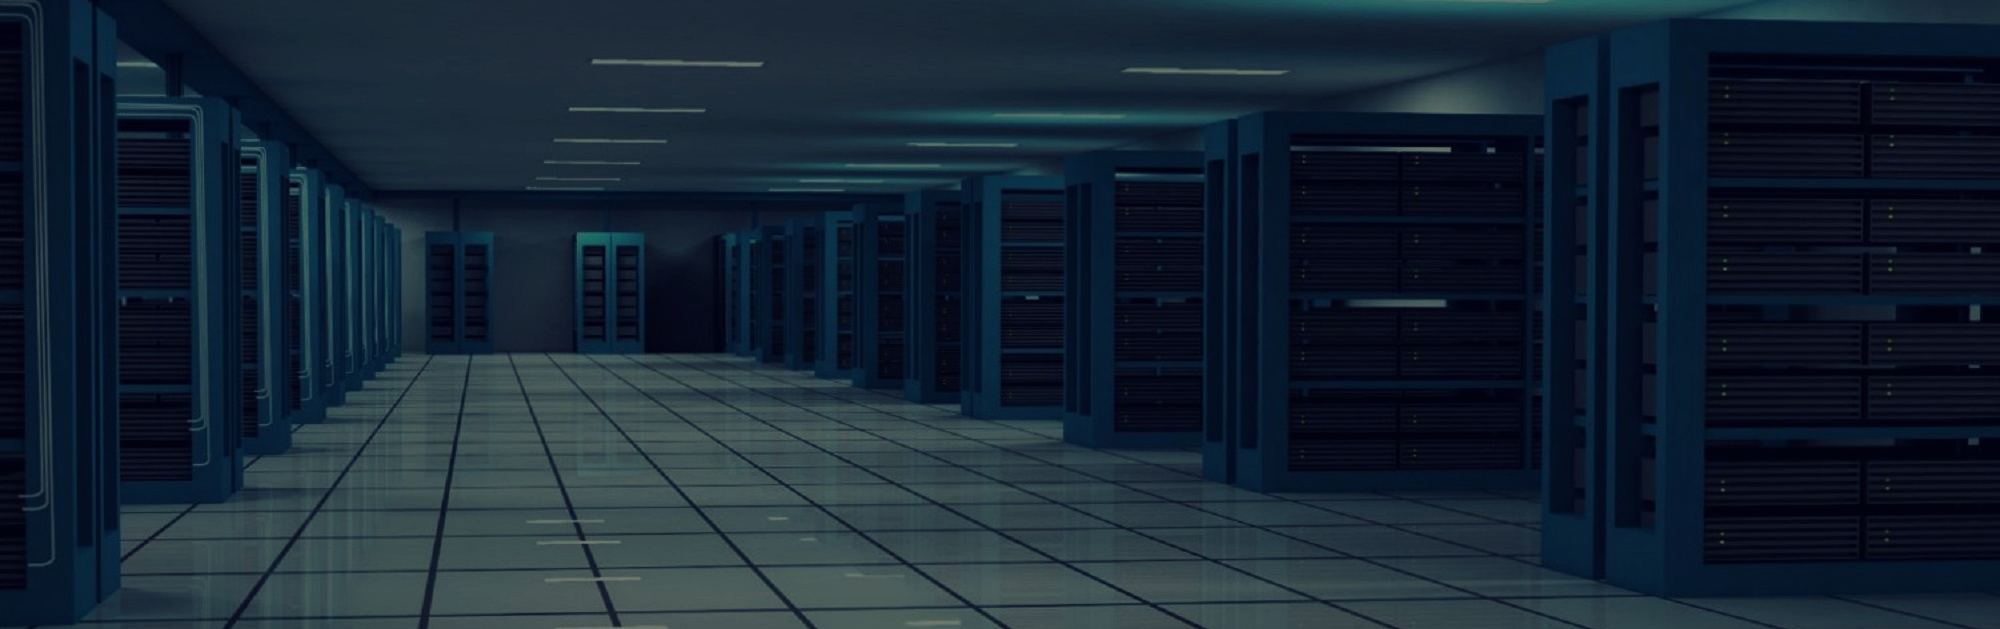 datacenter-server-header-banner